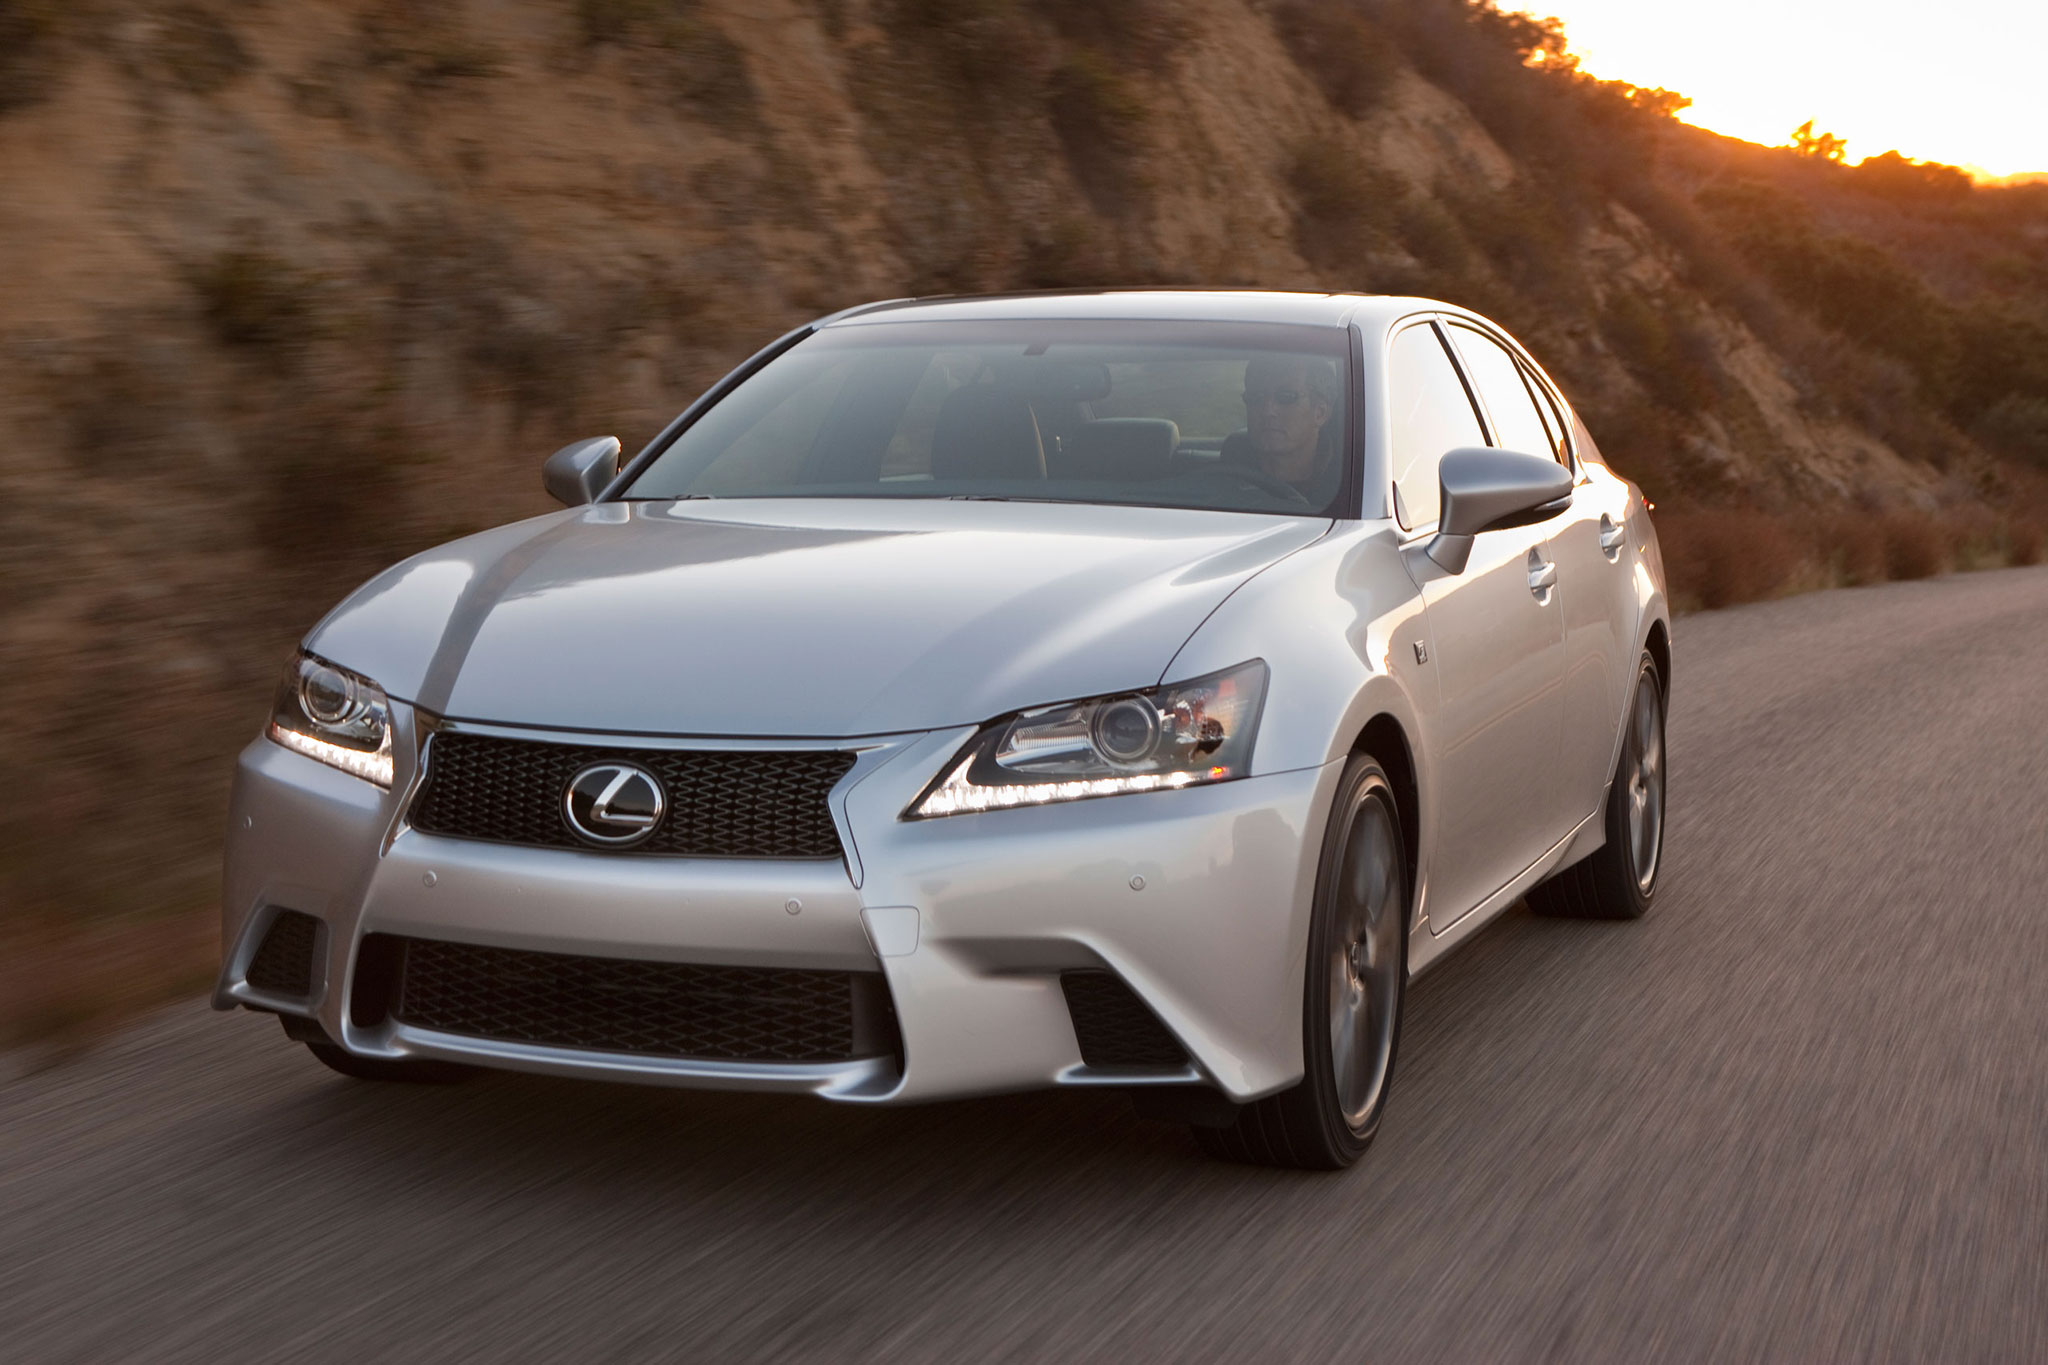 http://st.automobilemag.com/uploads/sites/10/2015/09/2013-lexus-GS-350-F-sport-three-quarters-view-15.jpg